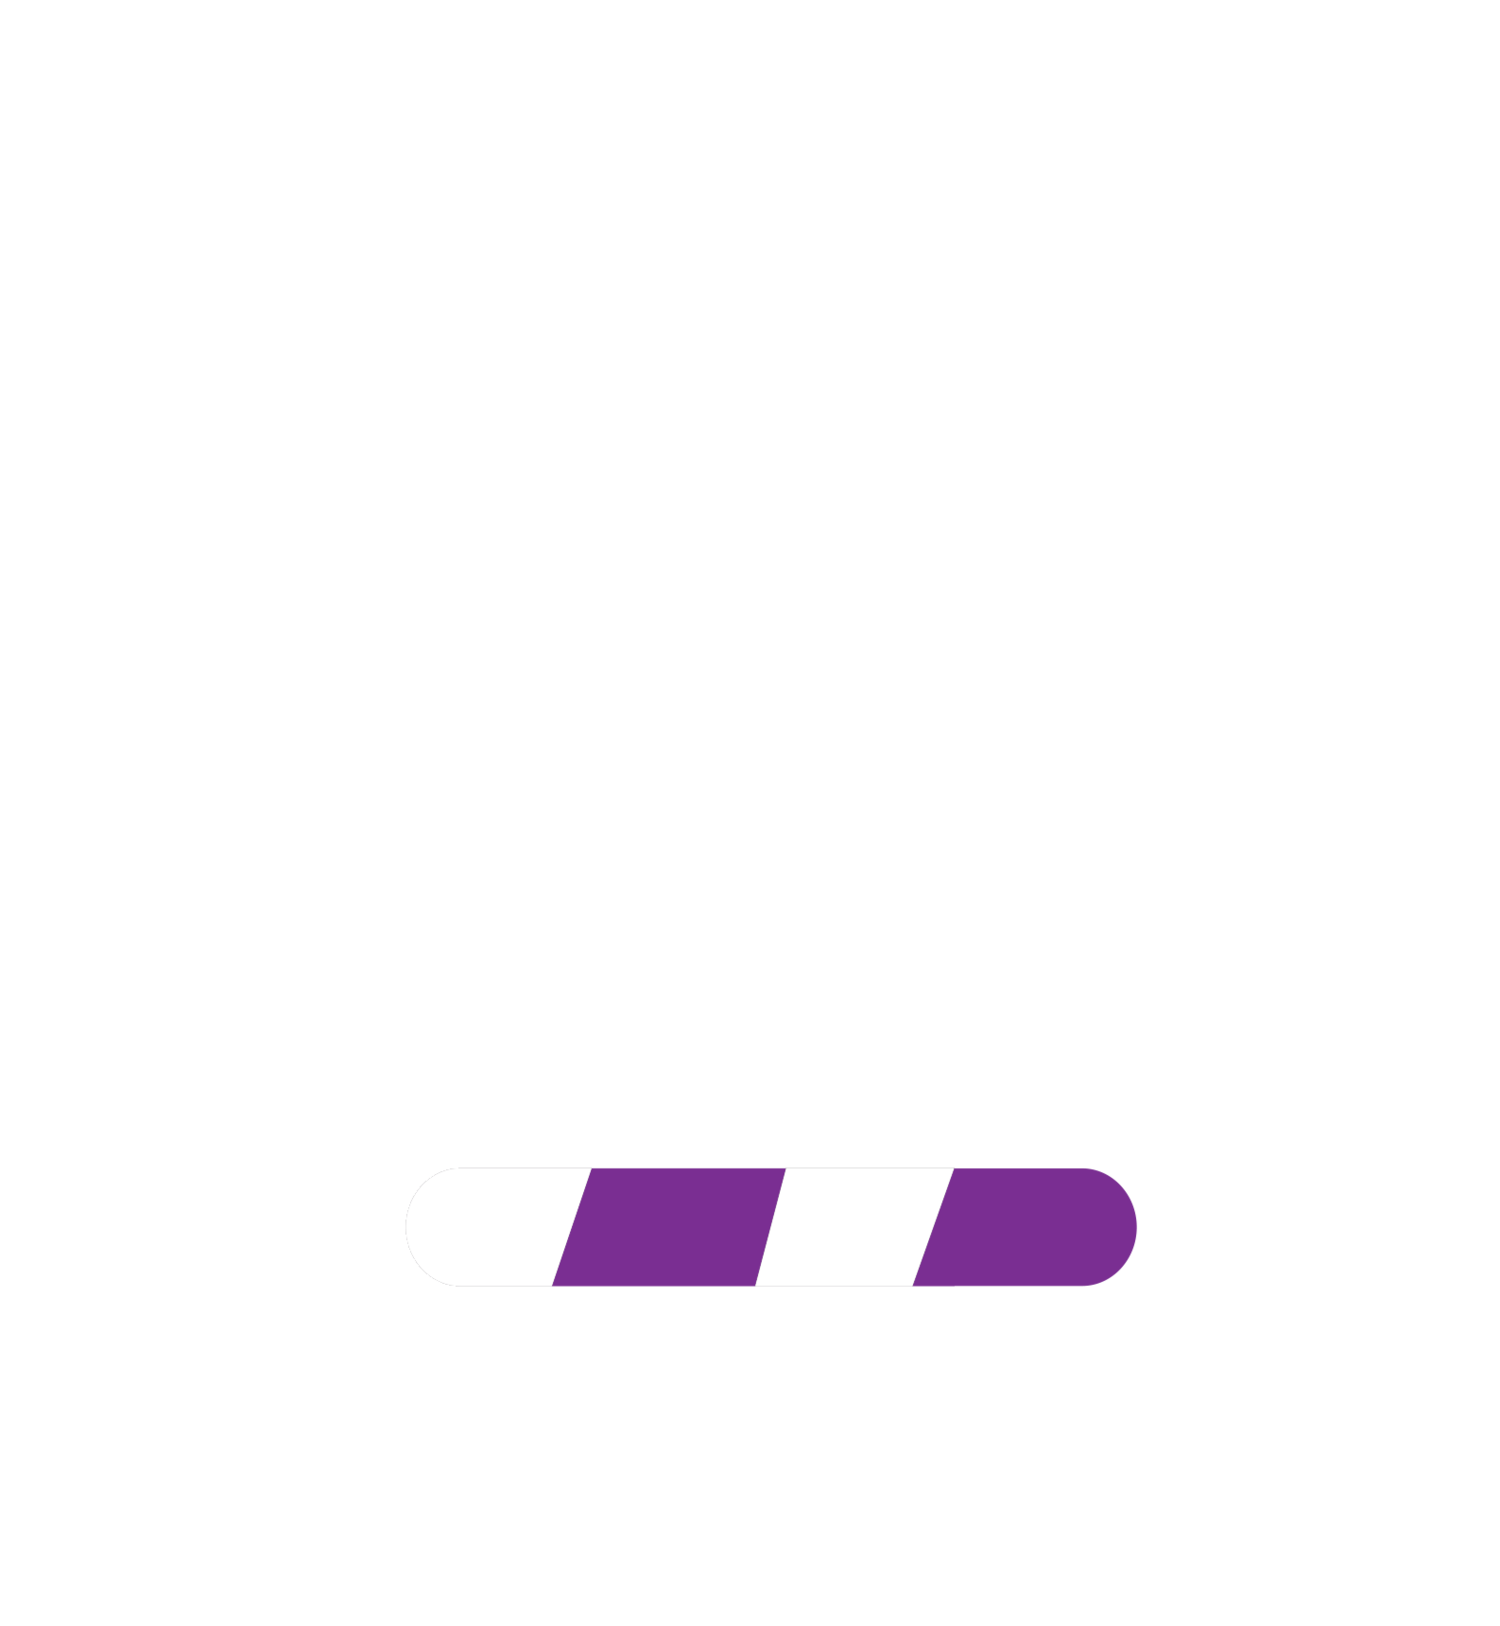 Southgate Cricket Club